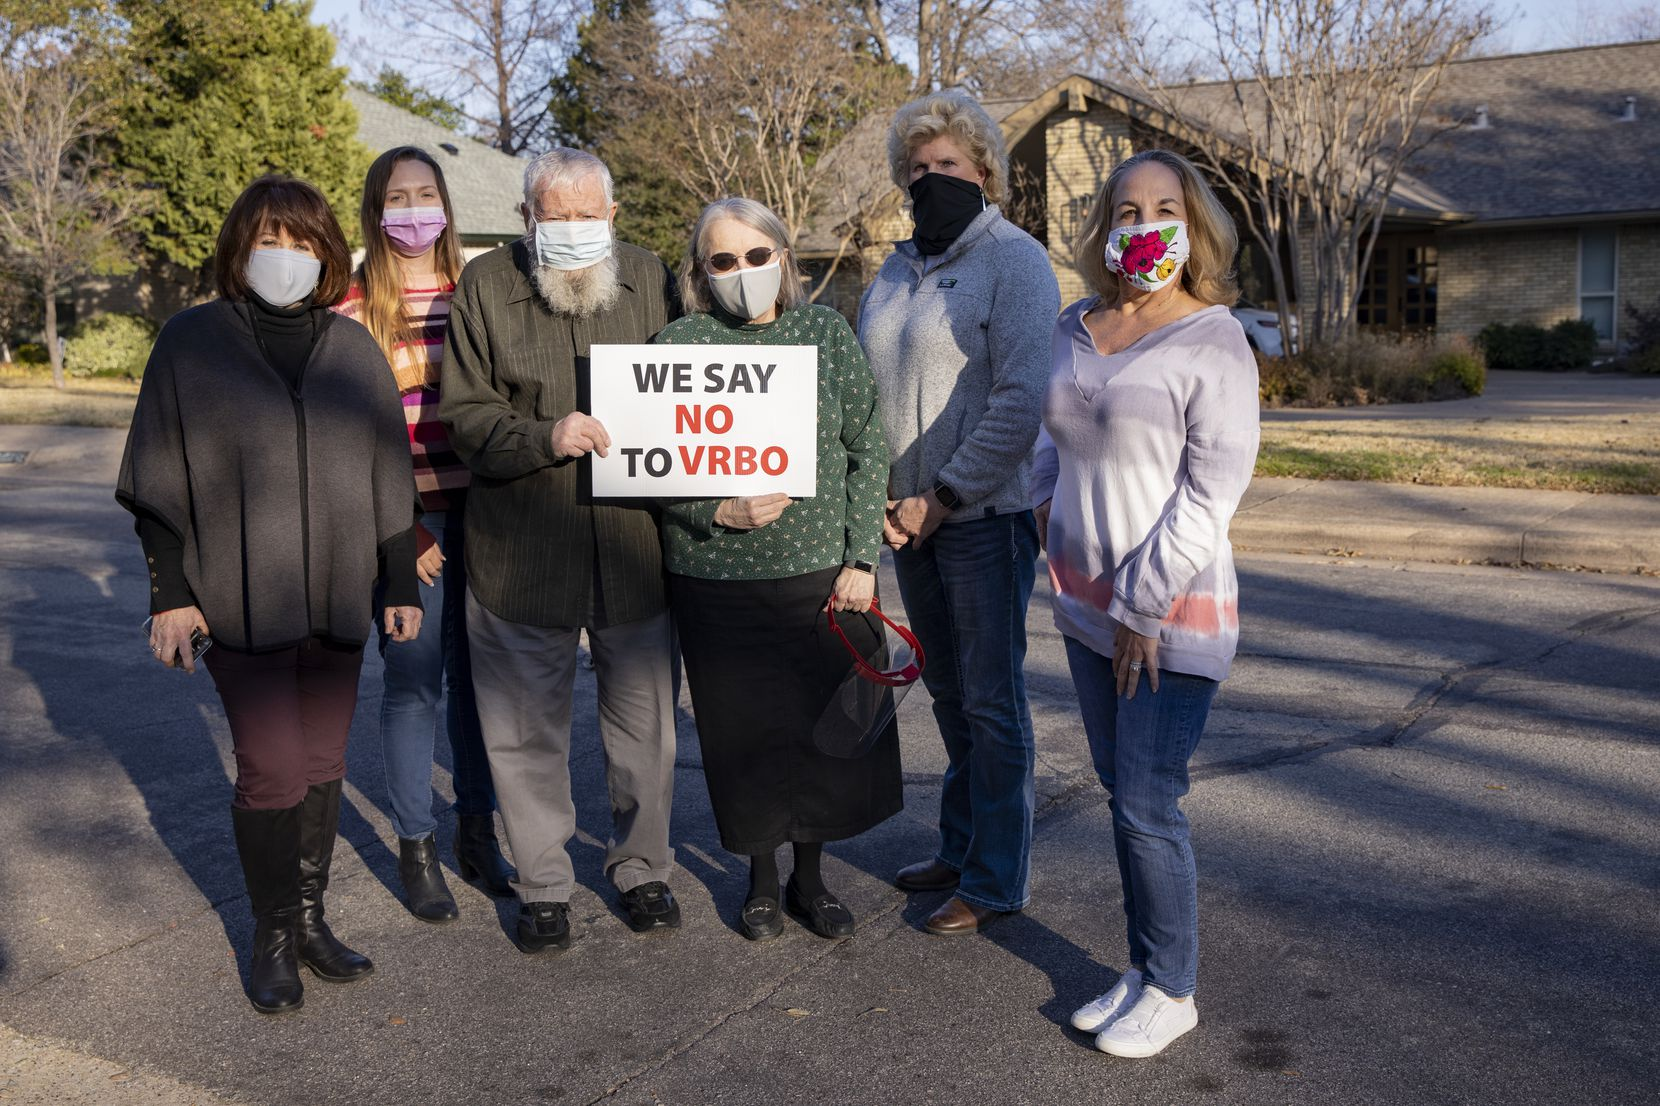 Among the Lochwood residents who have expressed concern about the short-term rental in their neighborhood are, from left, Caton Cadigan, Mary Nagler, John and Terry Kohl, Sharolyn Parker and Shelby Gibbs.